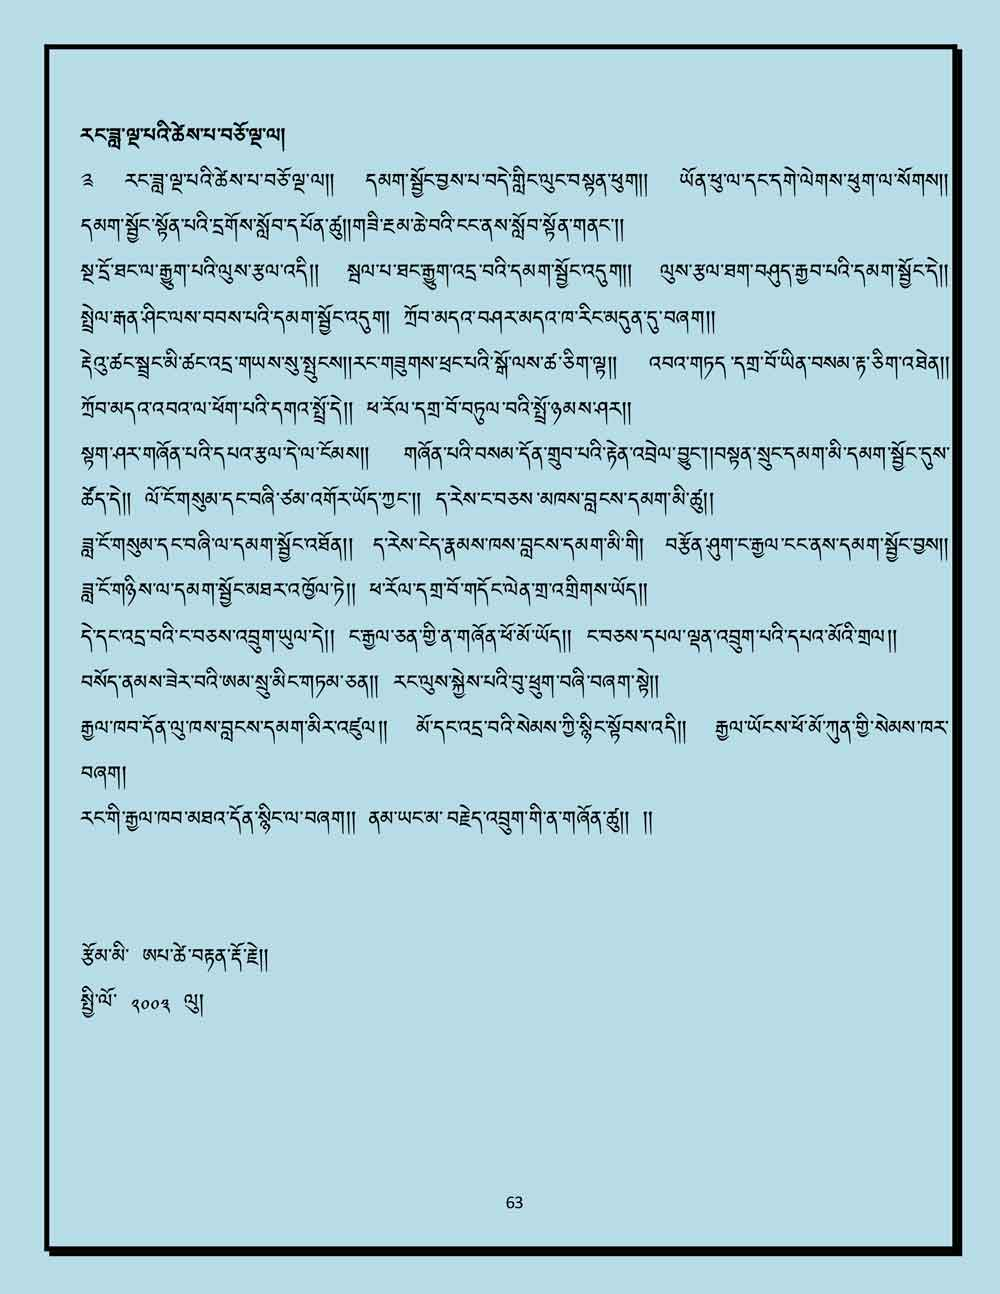 Ap-Tseten-Lyrics-63.jpg